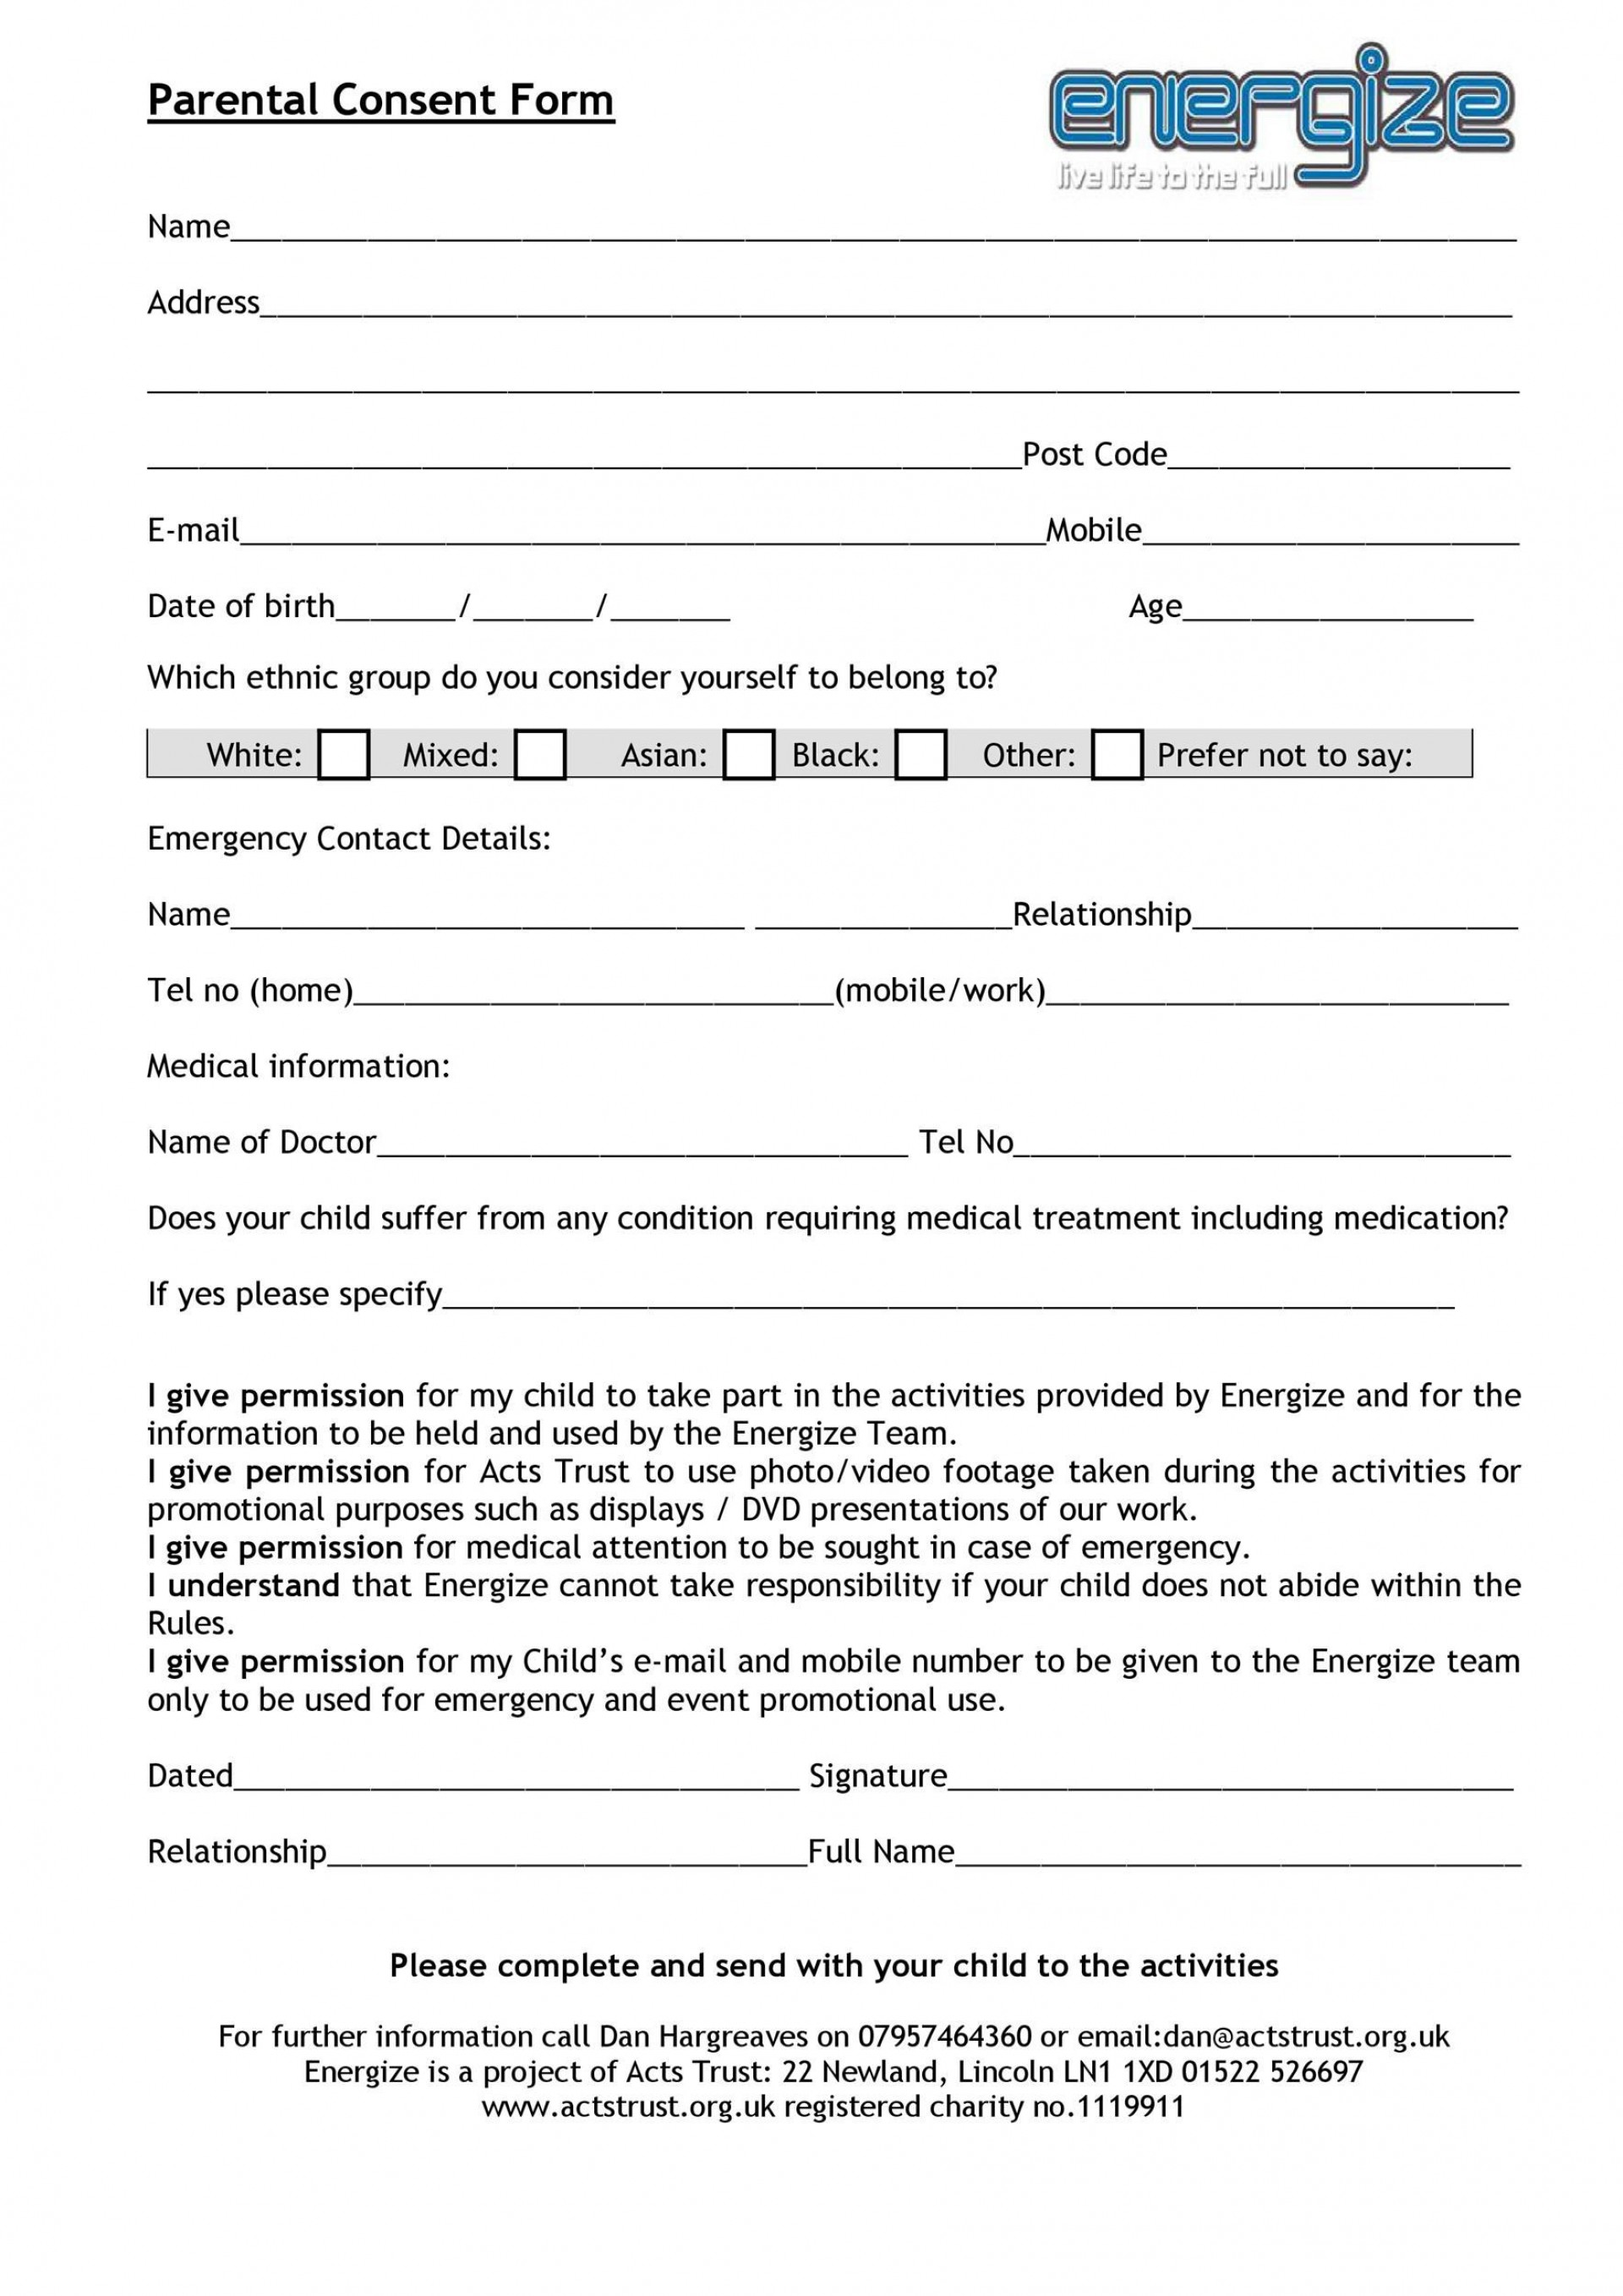 007 Archaicawful Free Printable Medical Consent Form Template Image 1920